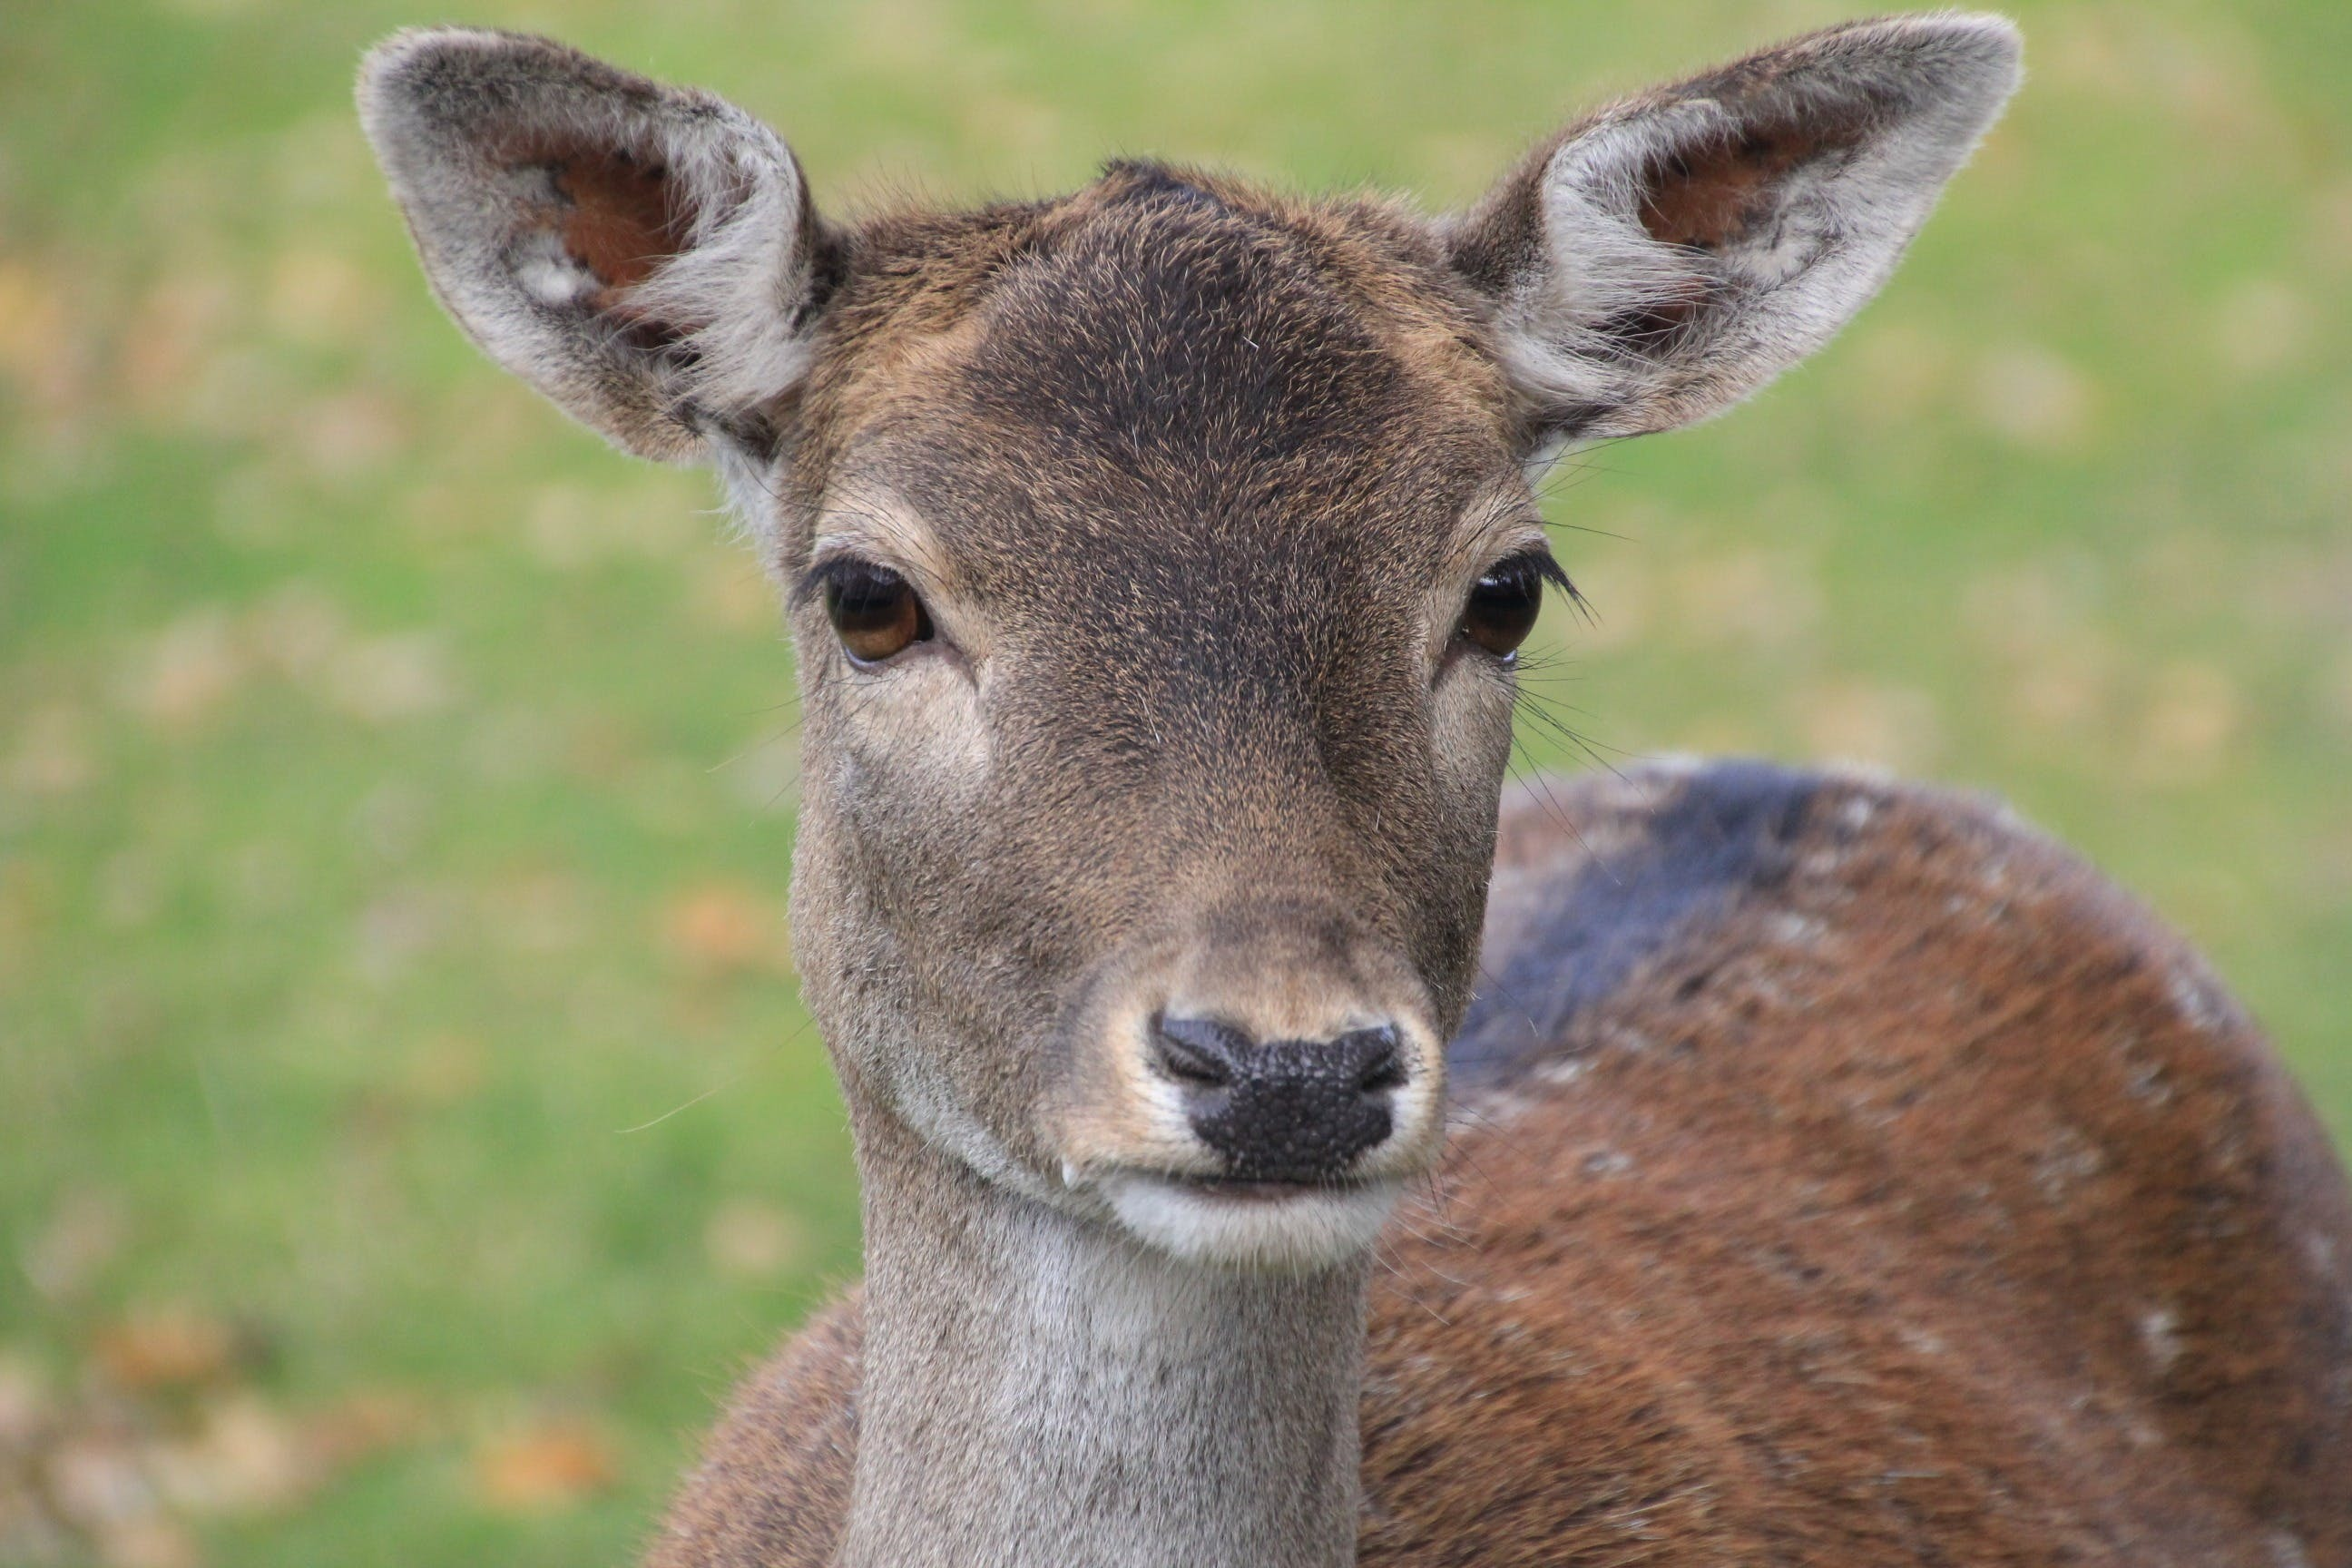 animal, close-up, deer